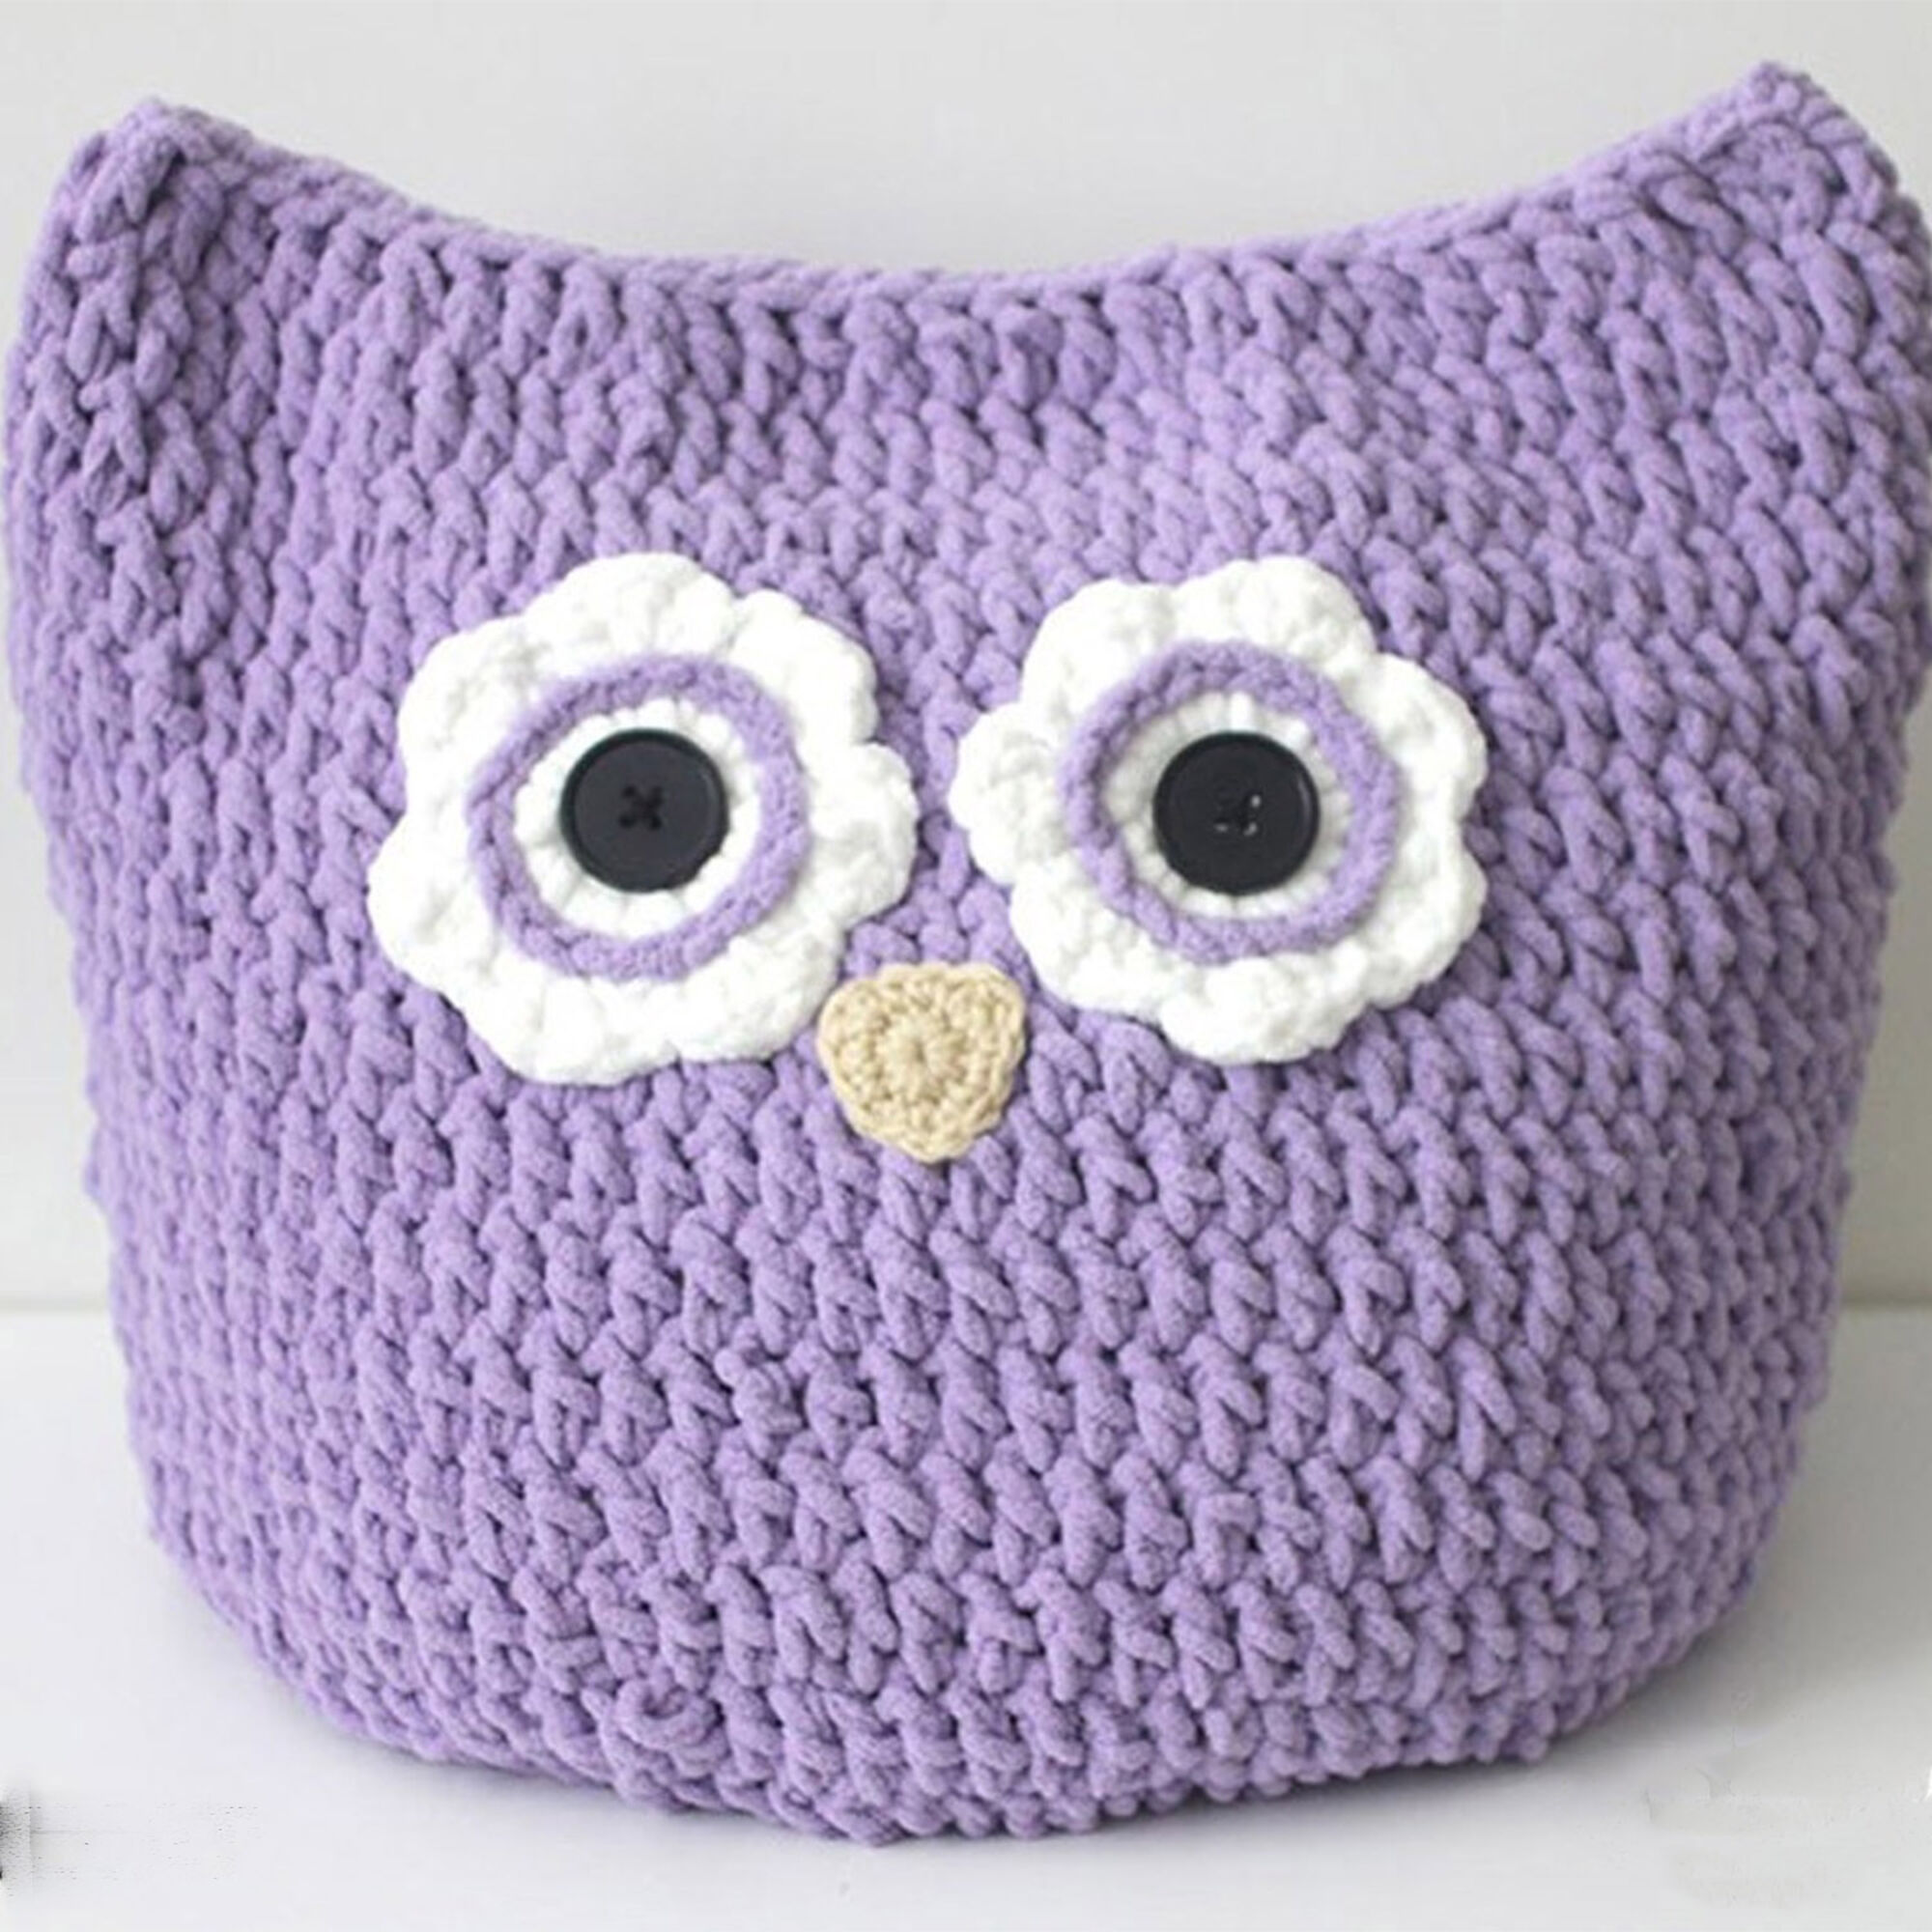 Bernat Oversized Owl Pillow to Crochet | Yarnspirations